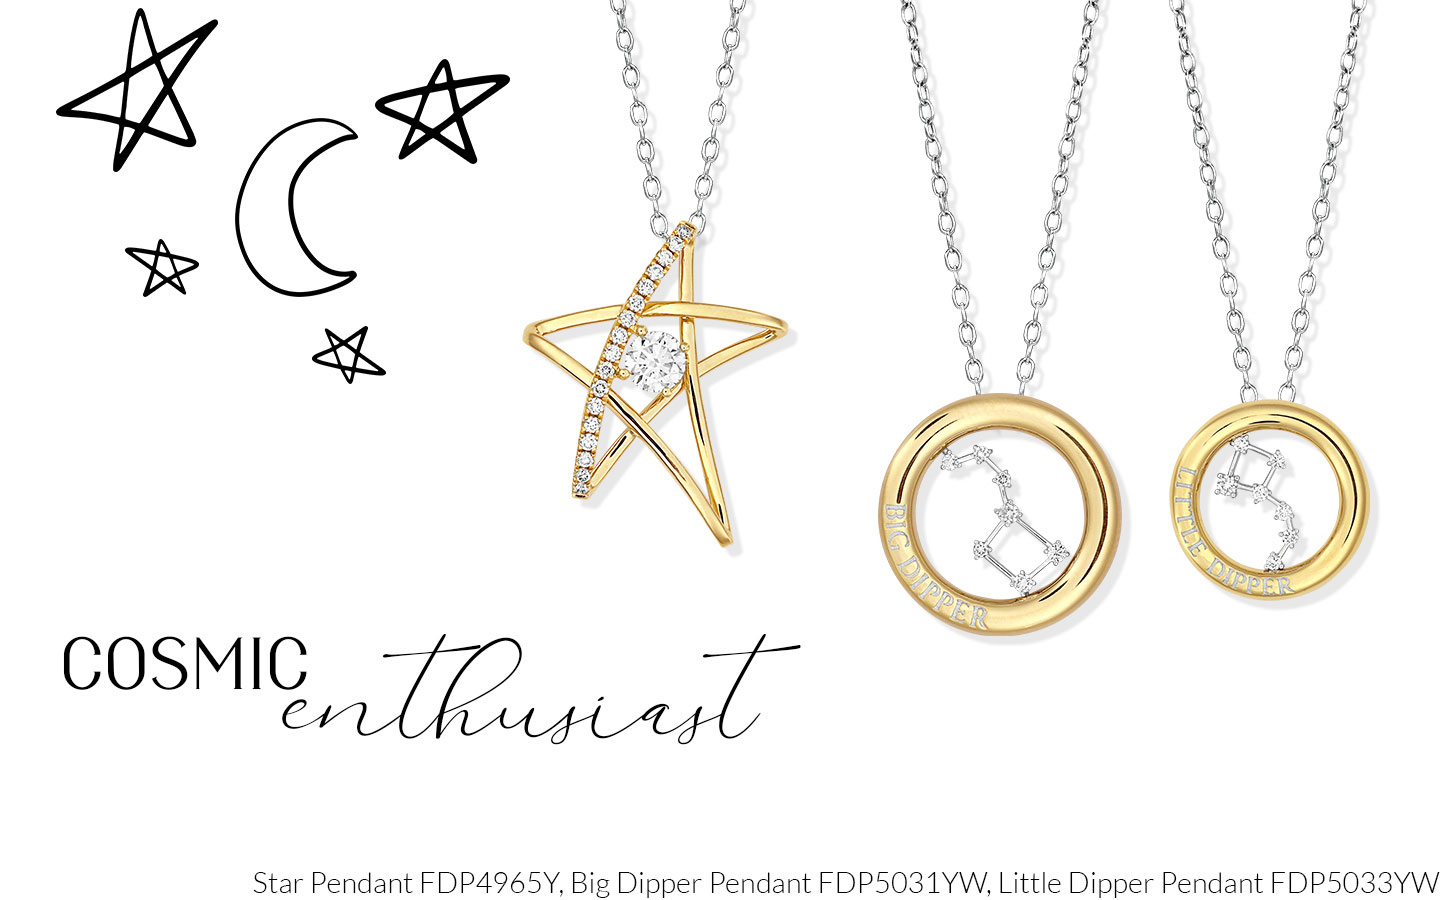 Spiritual Mom Cosmic Enthusiast Featuring Star Pendant FDP4965Y, Big Dipper Pendant FDP5031YW and Little Dipper Pendant FDP5033YW